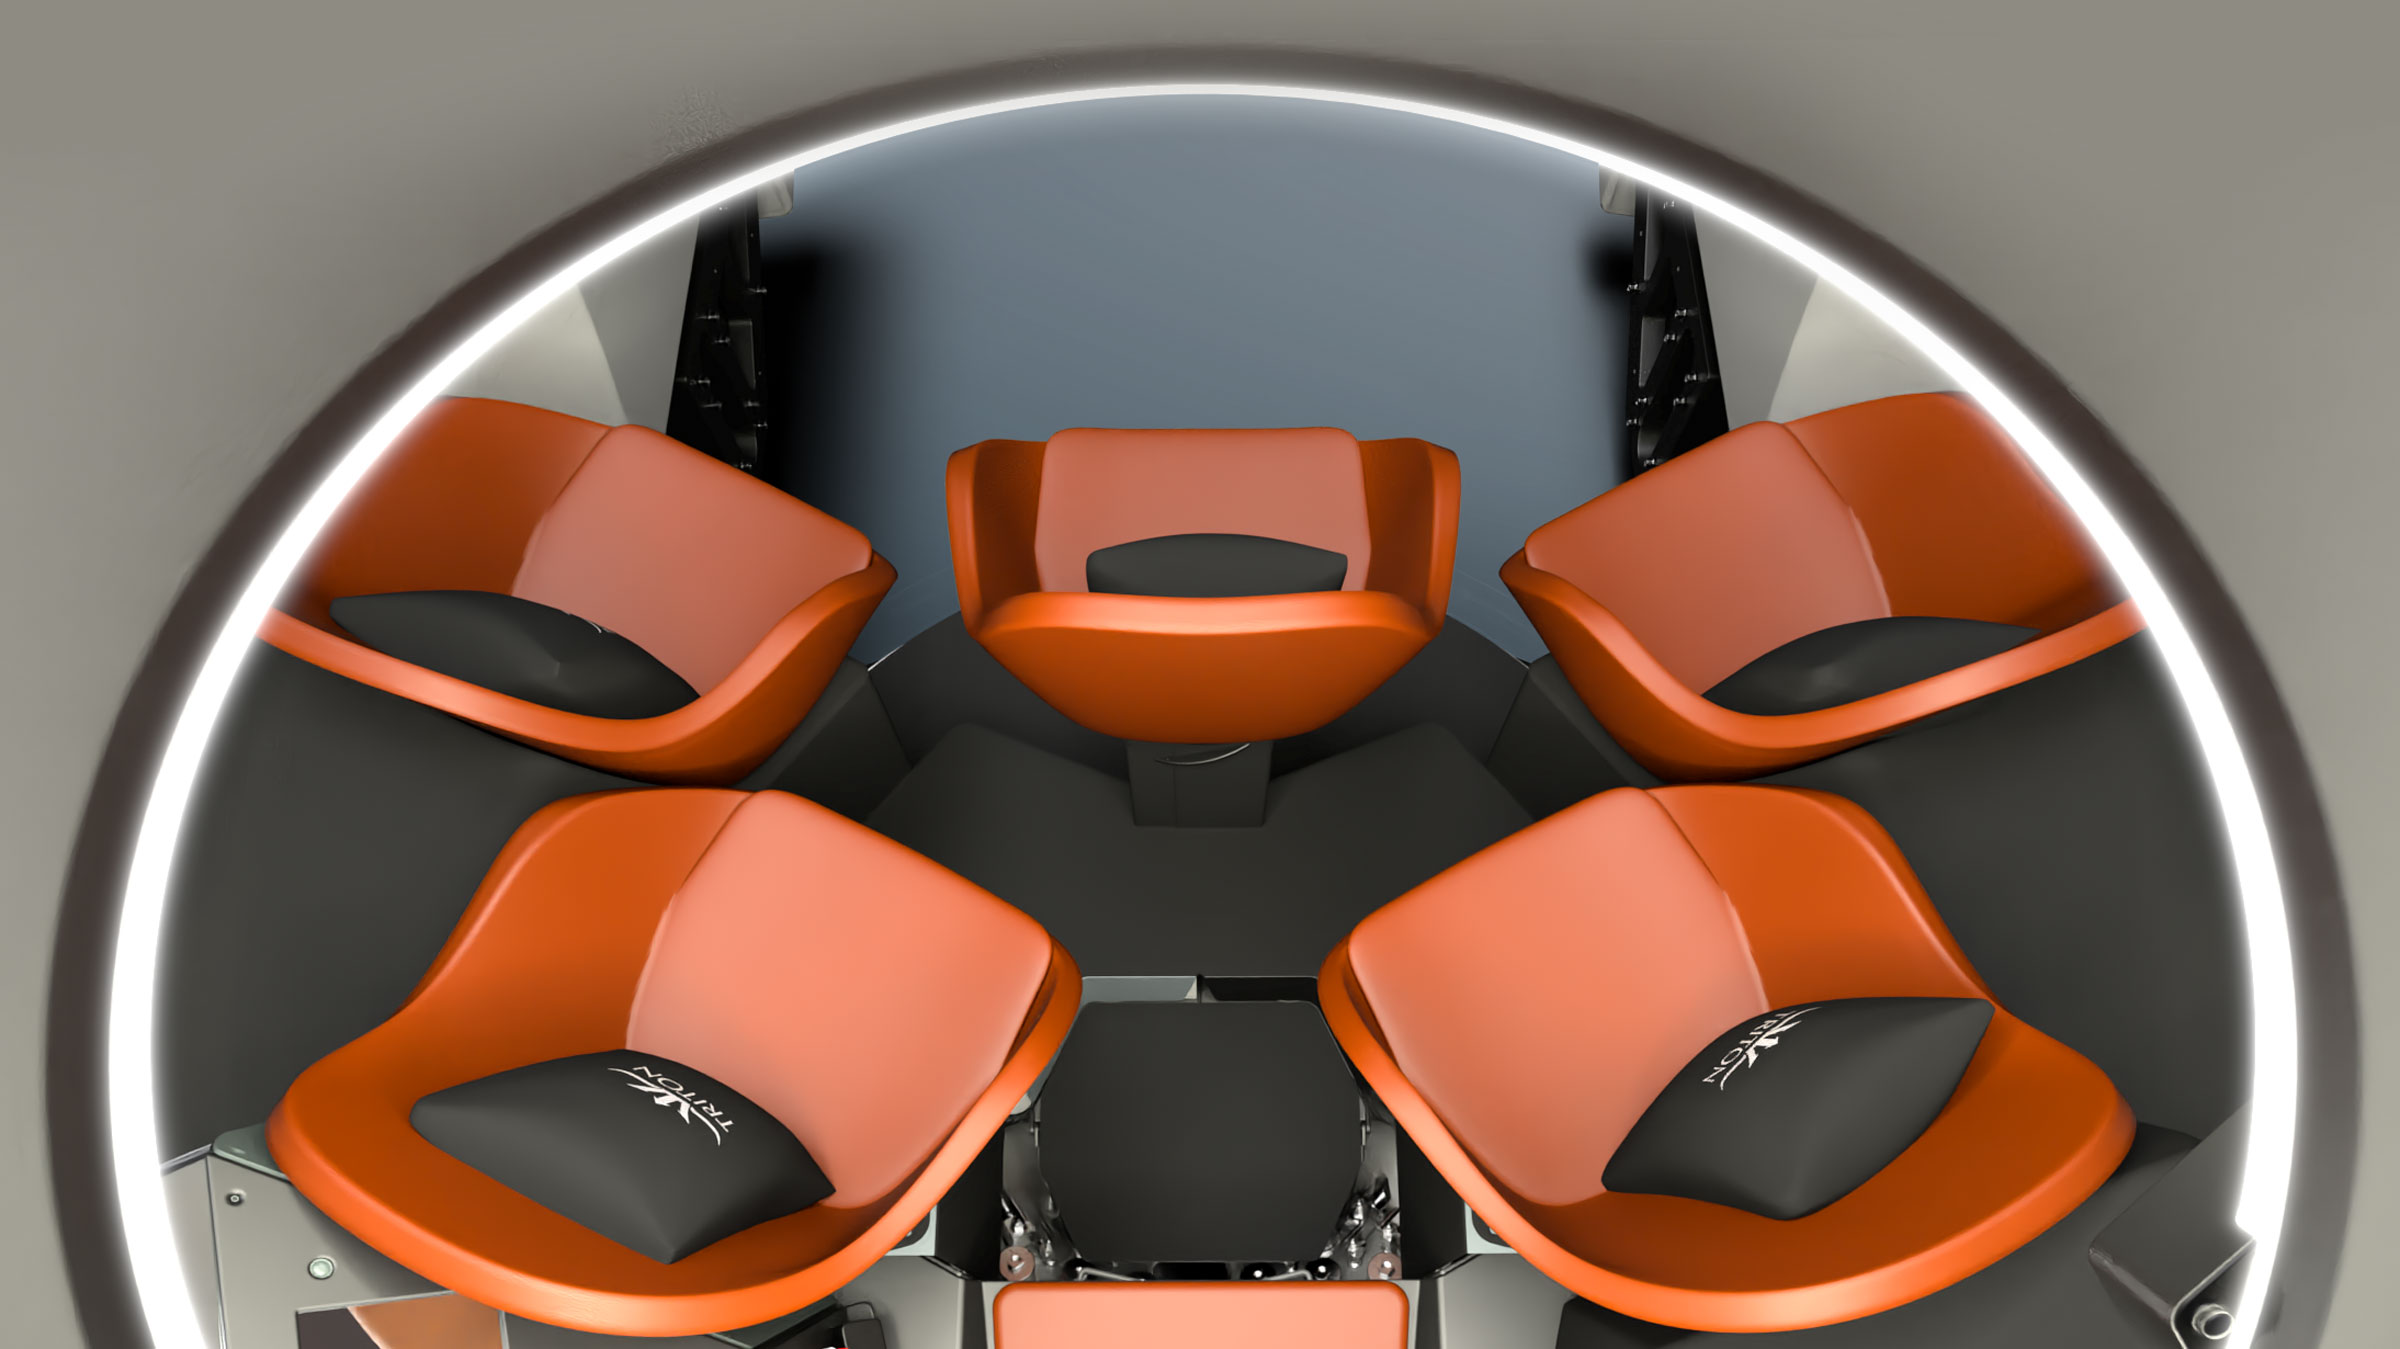 Top-down view of Triton 3300/6 interior seating.